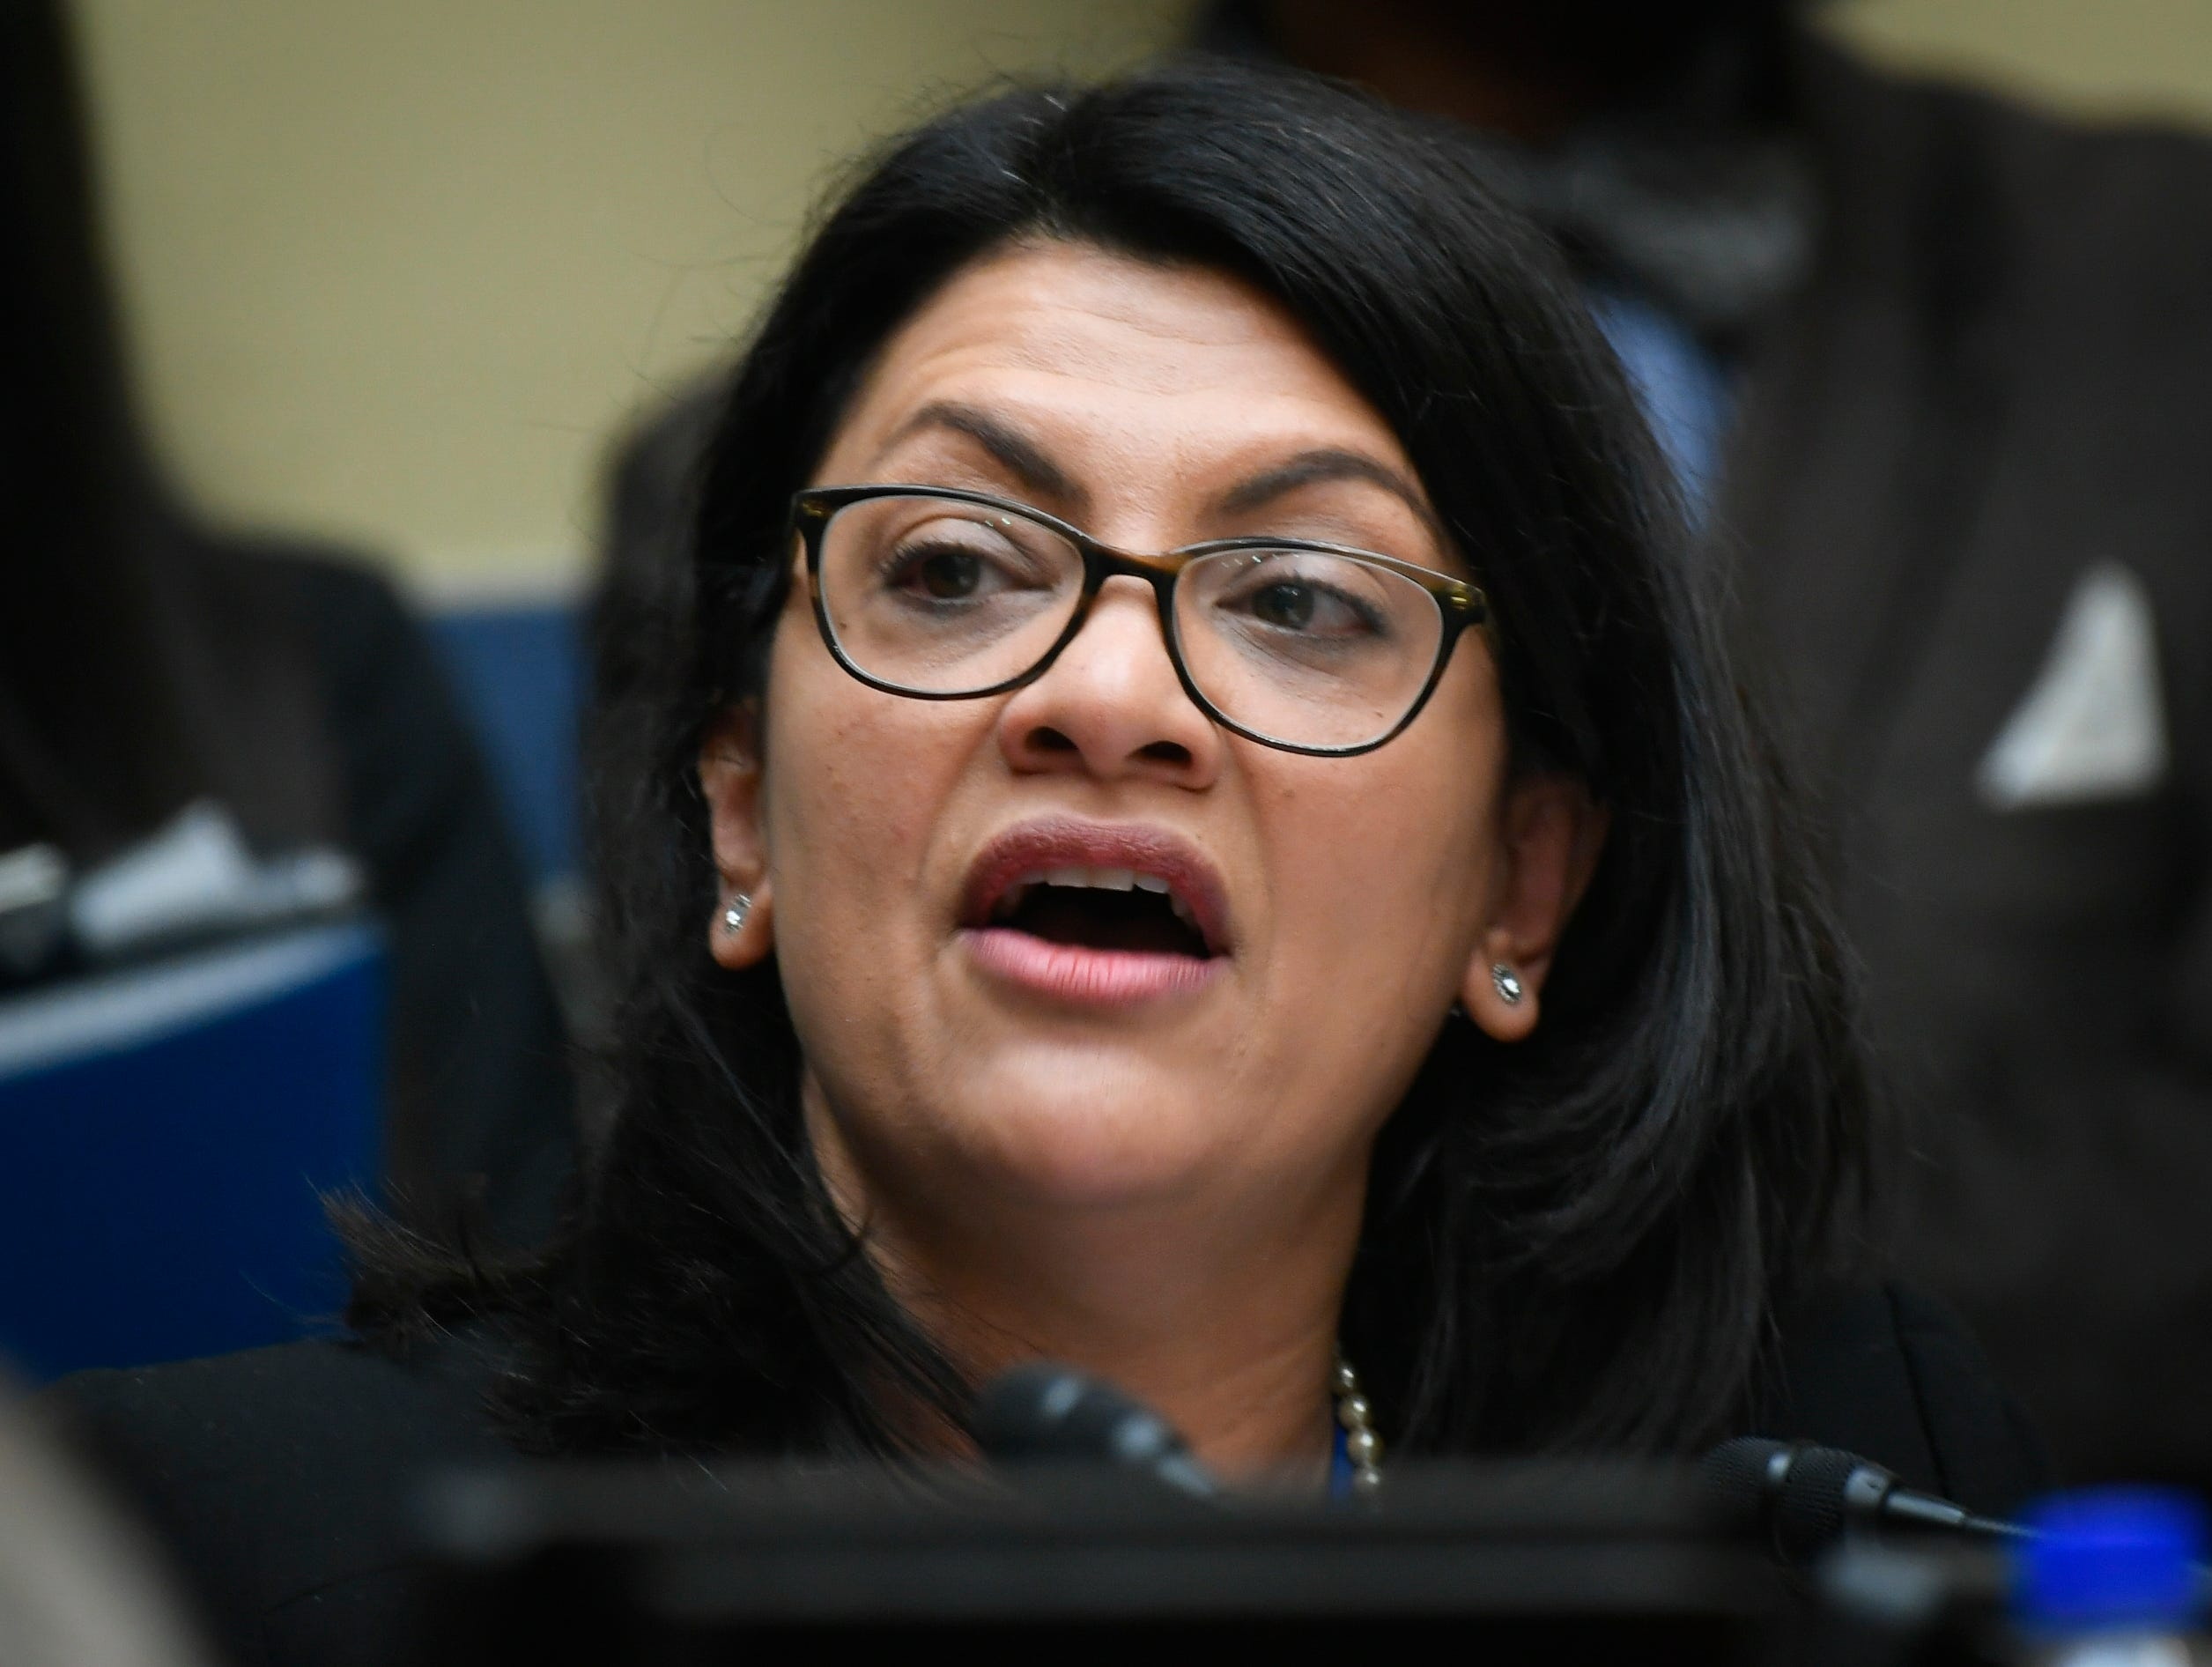 Rep. Rashida Tlaib (D-MI), closing her questions with a final remark leading to a heated exchange with Rep. Mark Meadows (R-NC) as she questioned Michael Cohen, President Donald Trump's longtime personal attorney, testifies before the House Committee on Oversight and Reform on Feb. 27, 2019 in Washington.